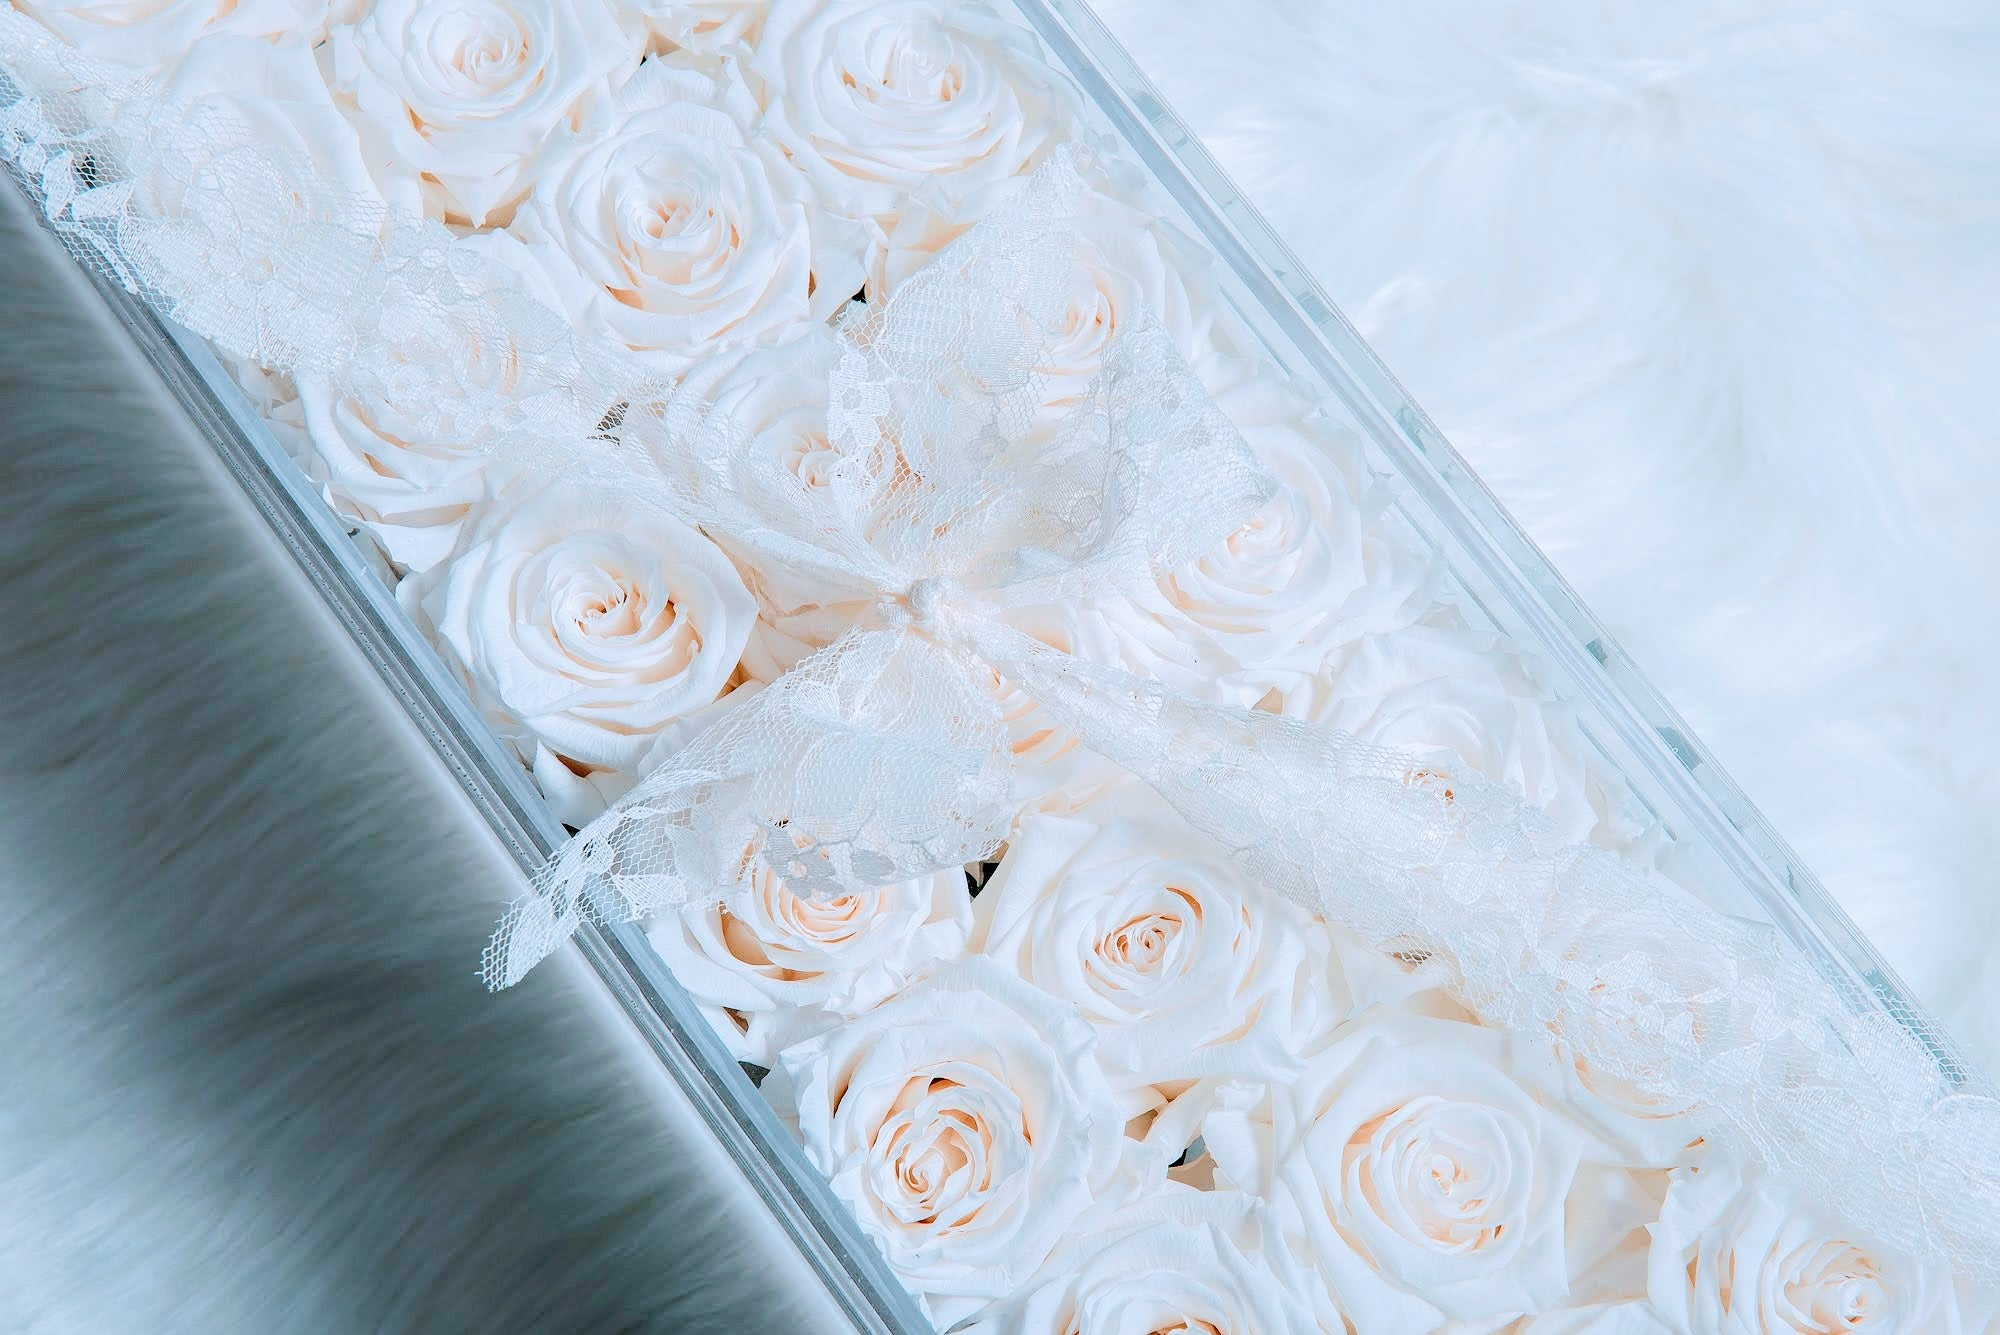 Roses and Stems That Last a Year - Luxurious Centerpiece - Color Variety Available